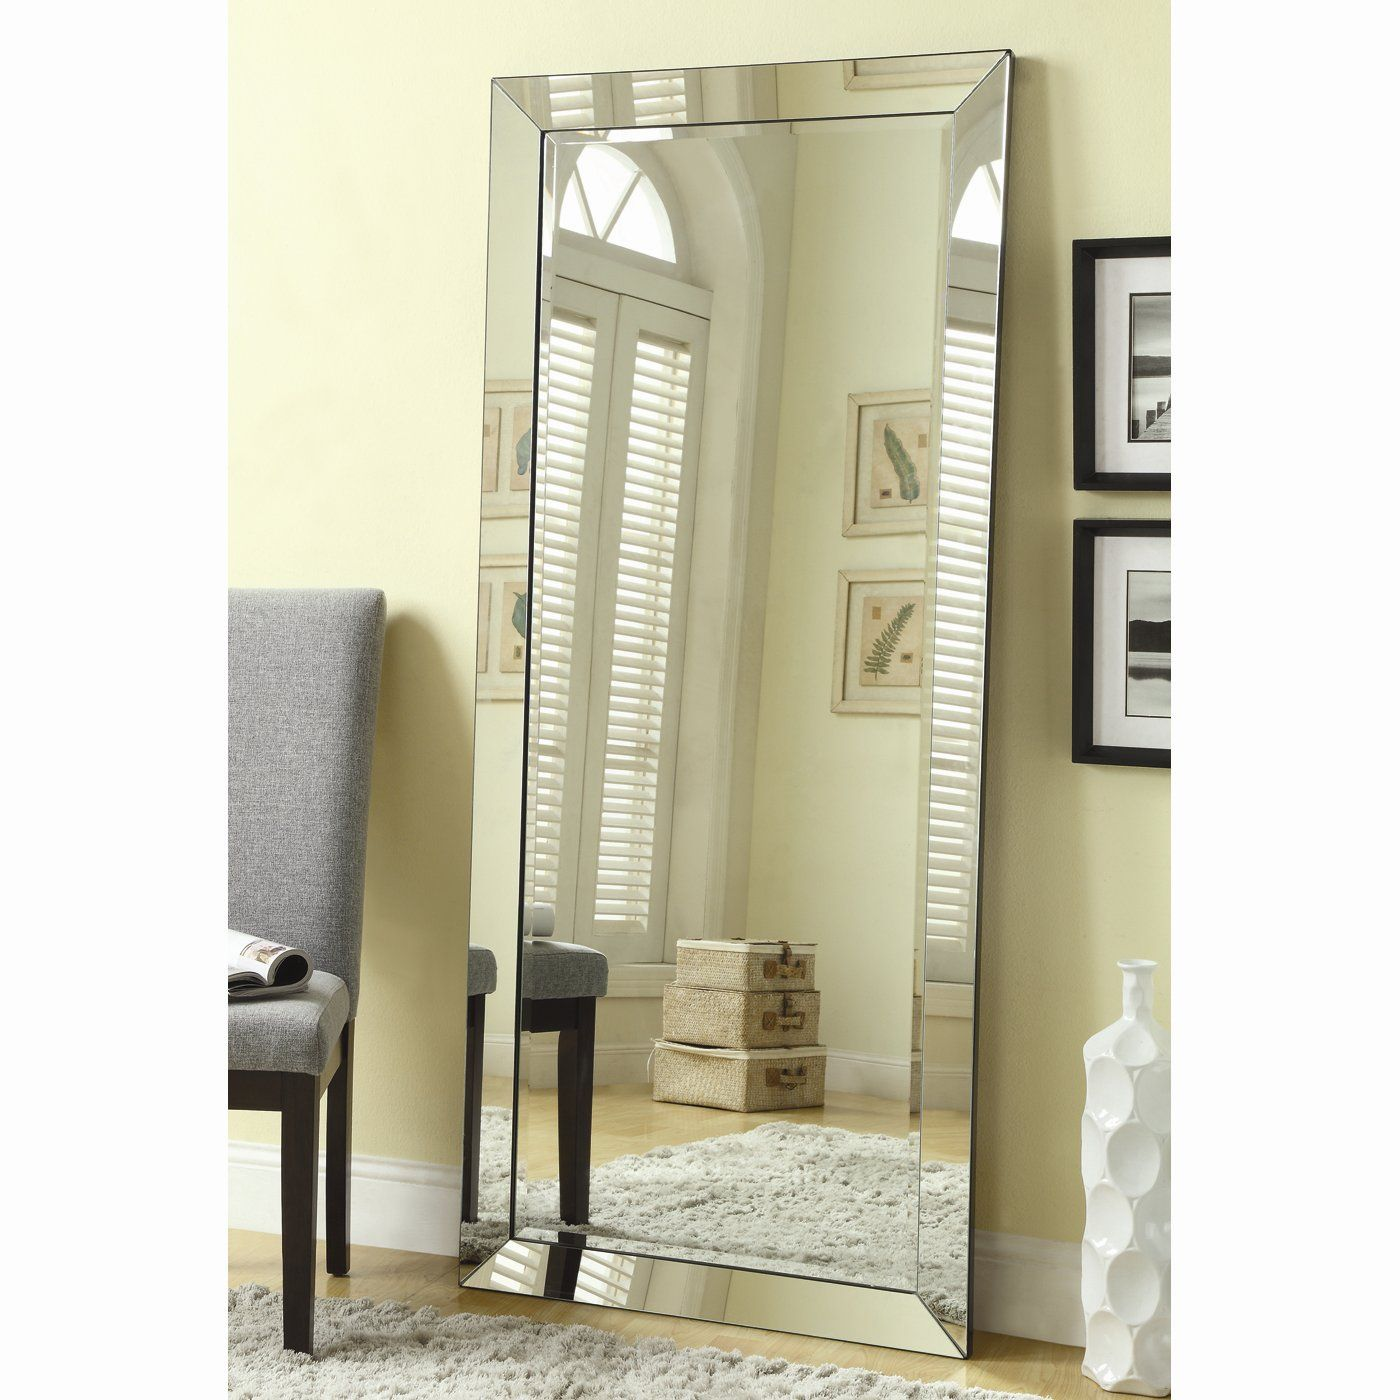 Shop Coaster Fine Furniture 901813 Floor Mirror at ATG Stores